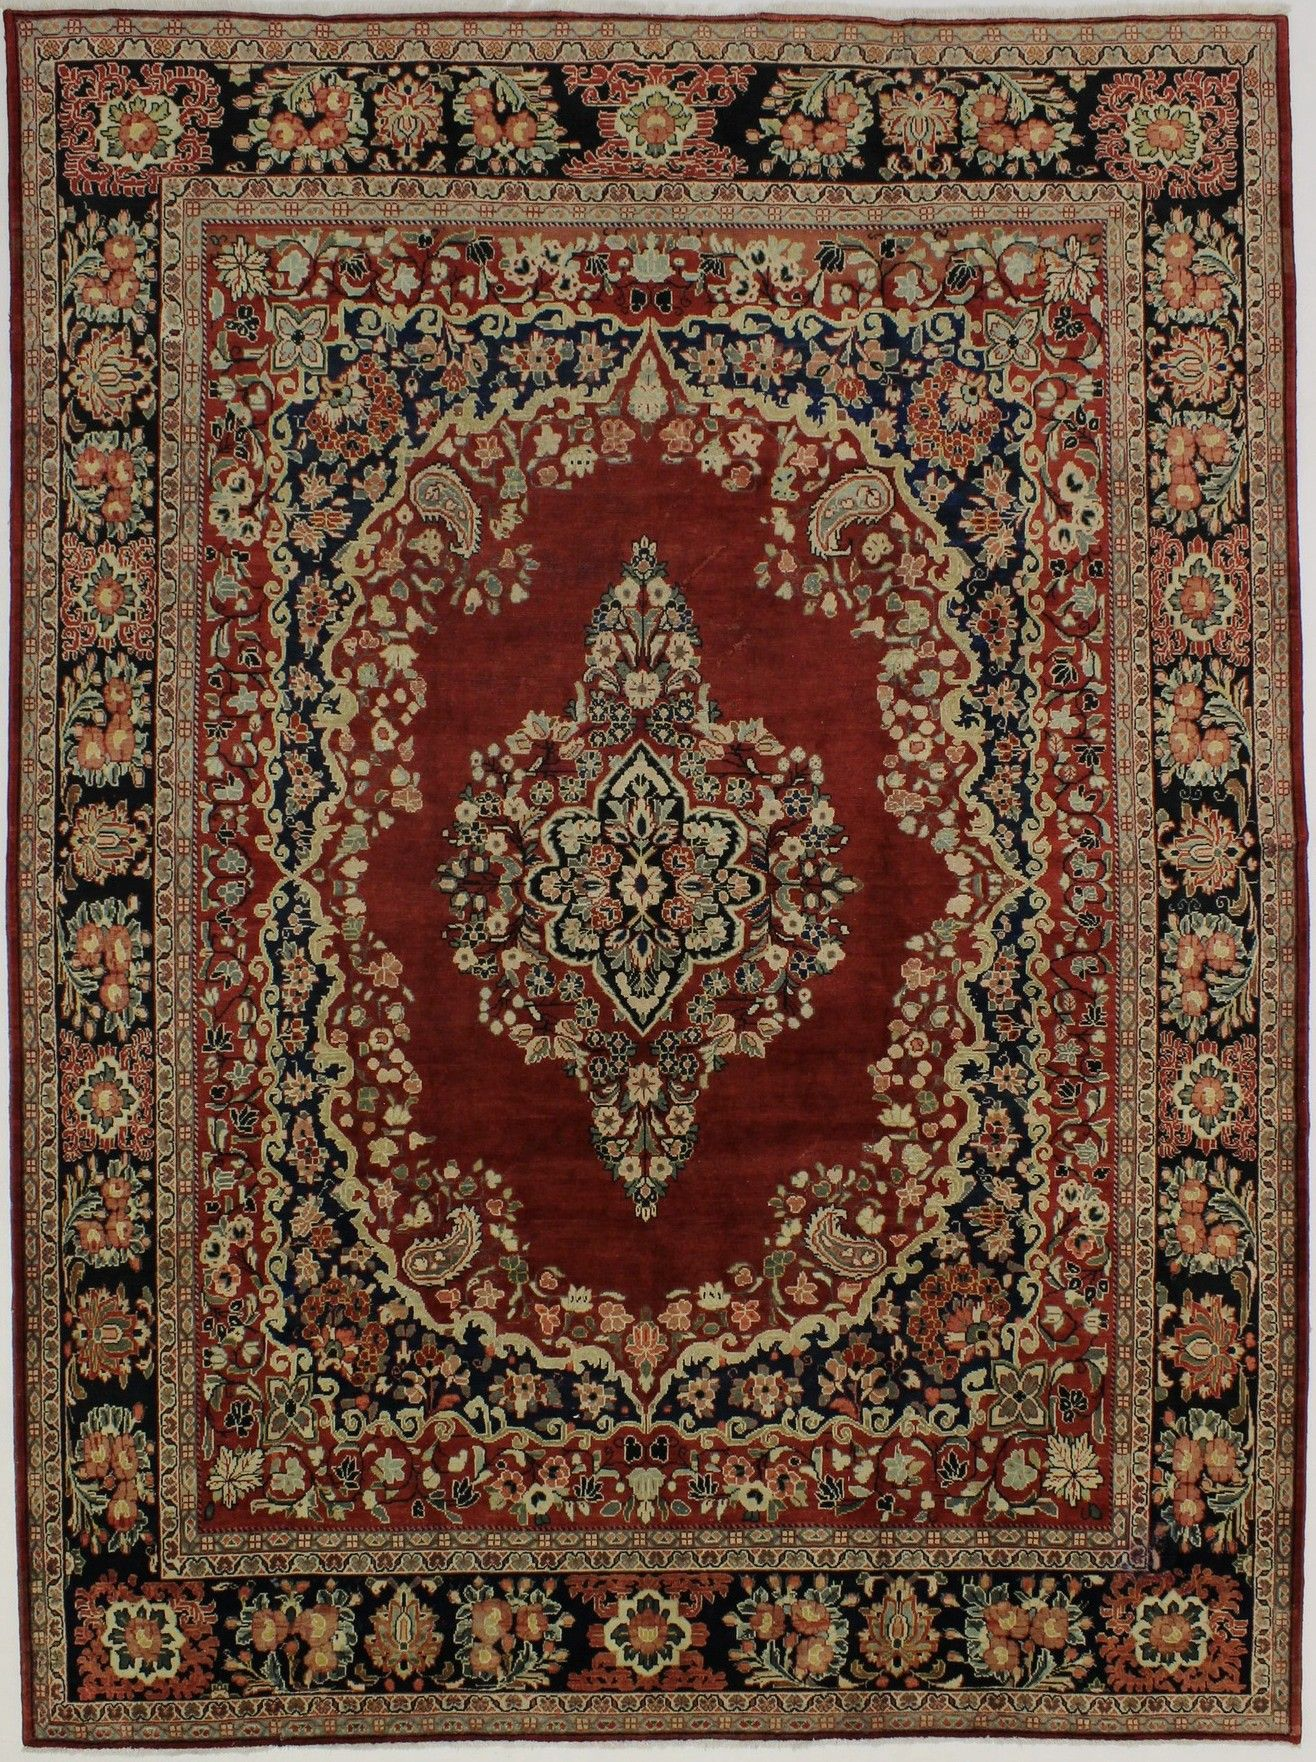 Palace Size 10 6x14 Semi Antique Mahal Persian Oriental Area Rug Carpet 11x14 Halilar